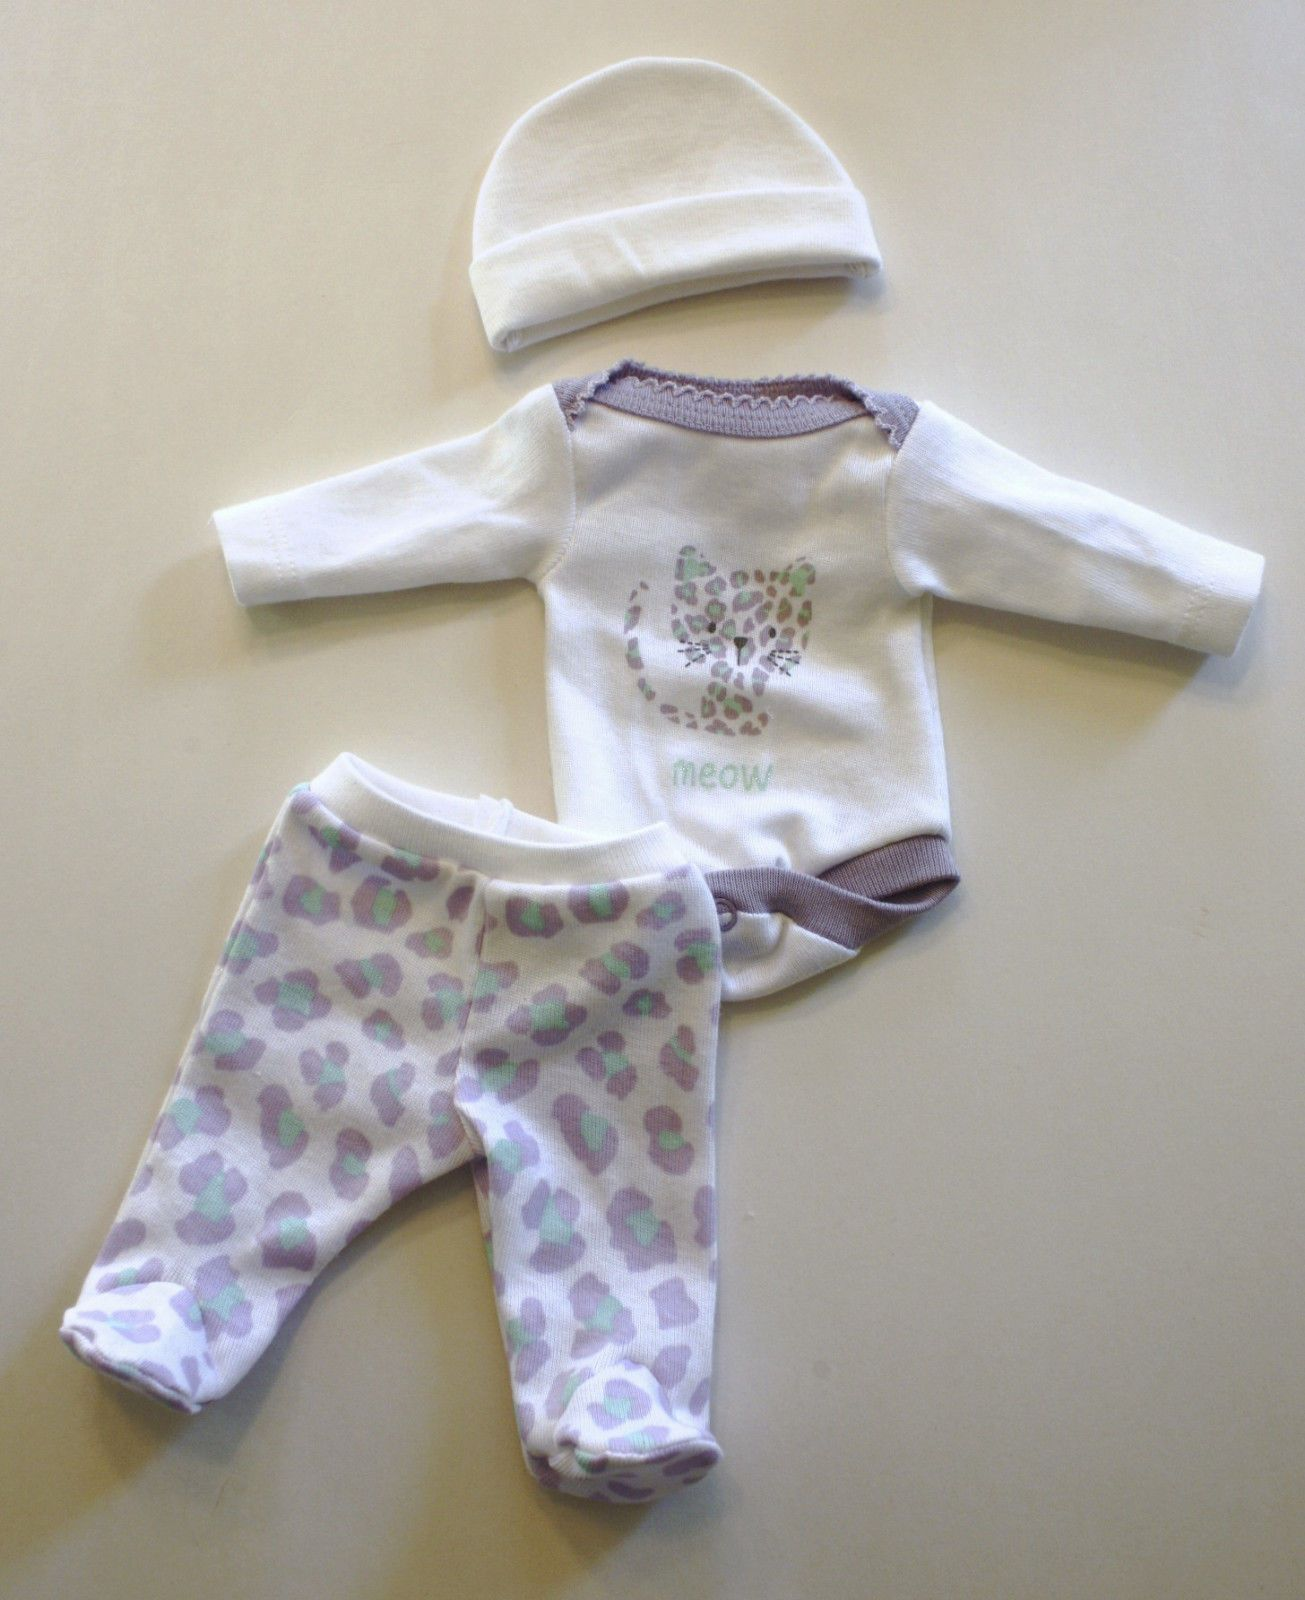 OOAK Baby Doll Clothes Bodysuit Tiny Miracle Mini Reborn